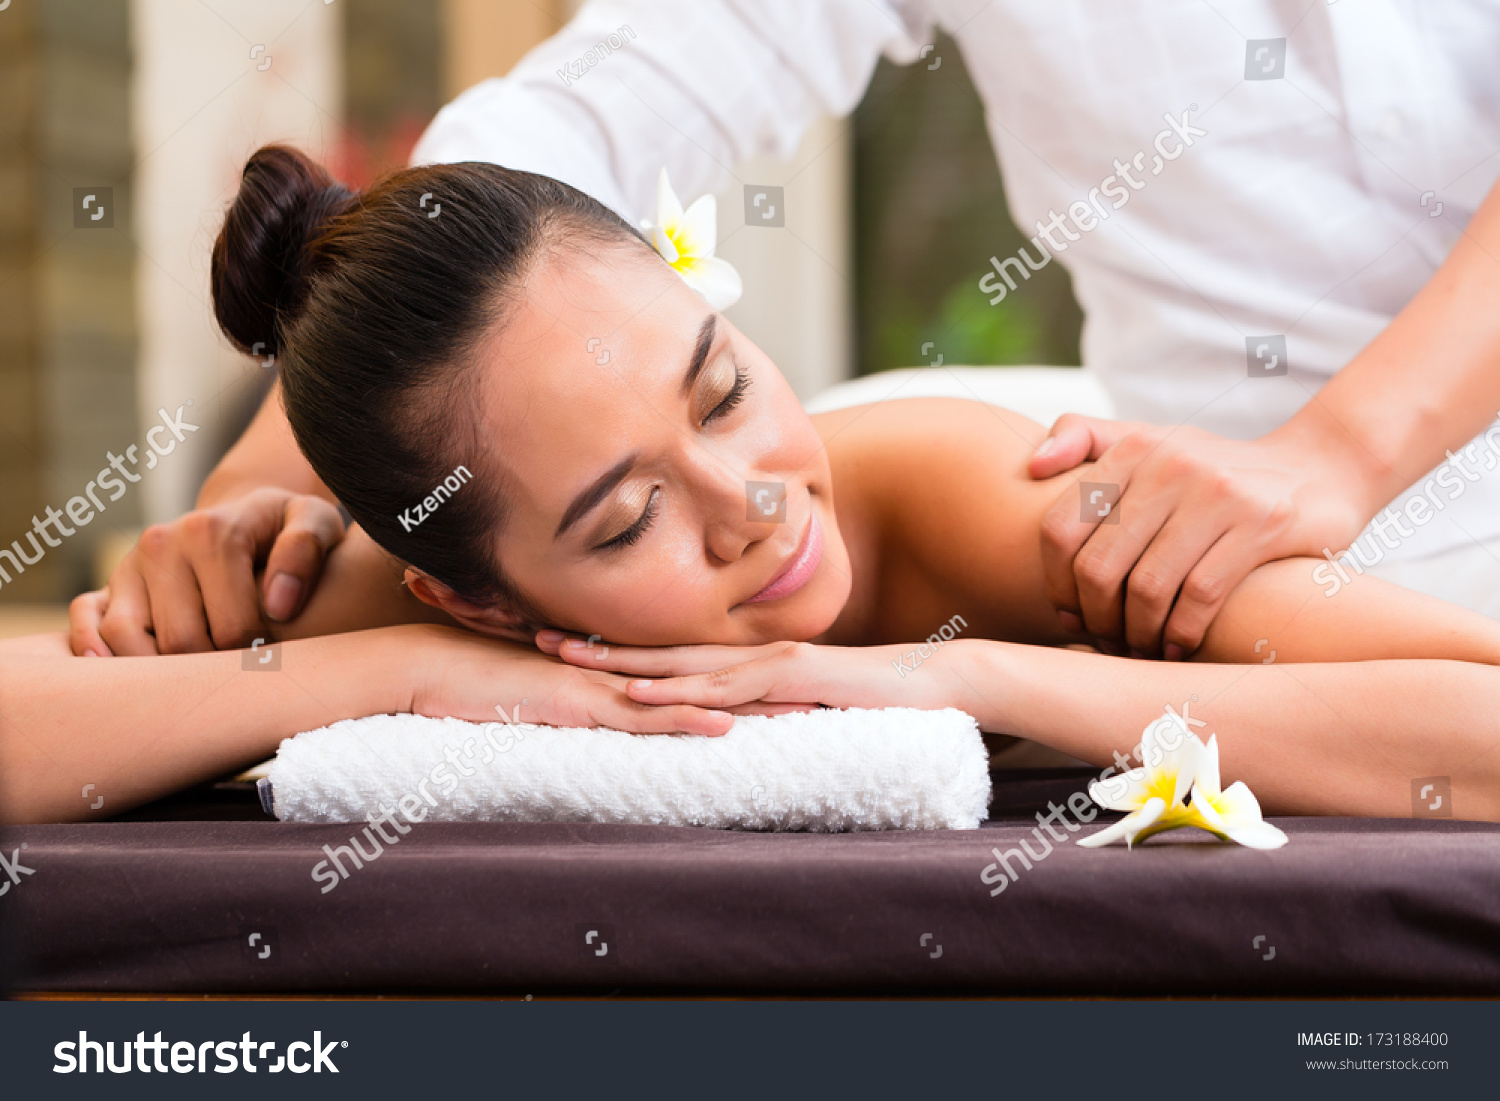 Parlors Wellness Vienna Massage For You Allyoucaneat